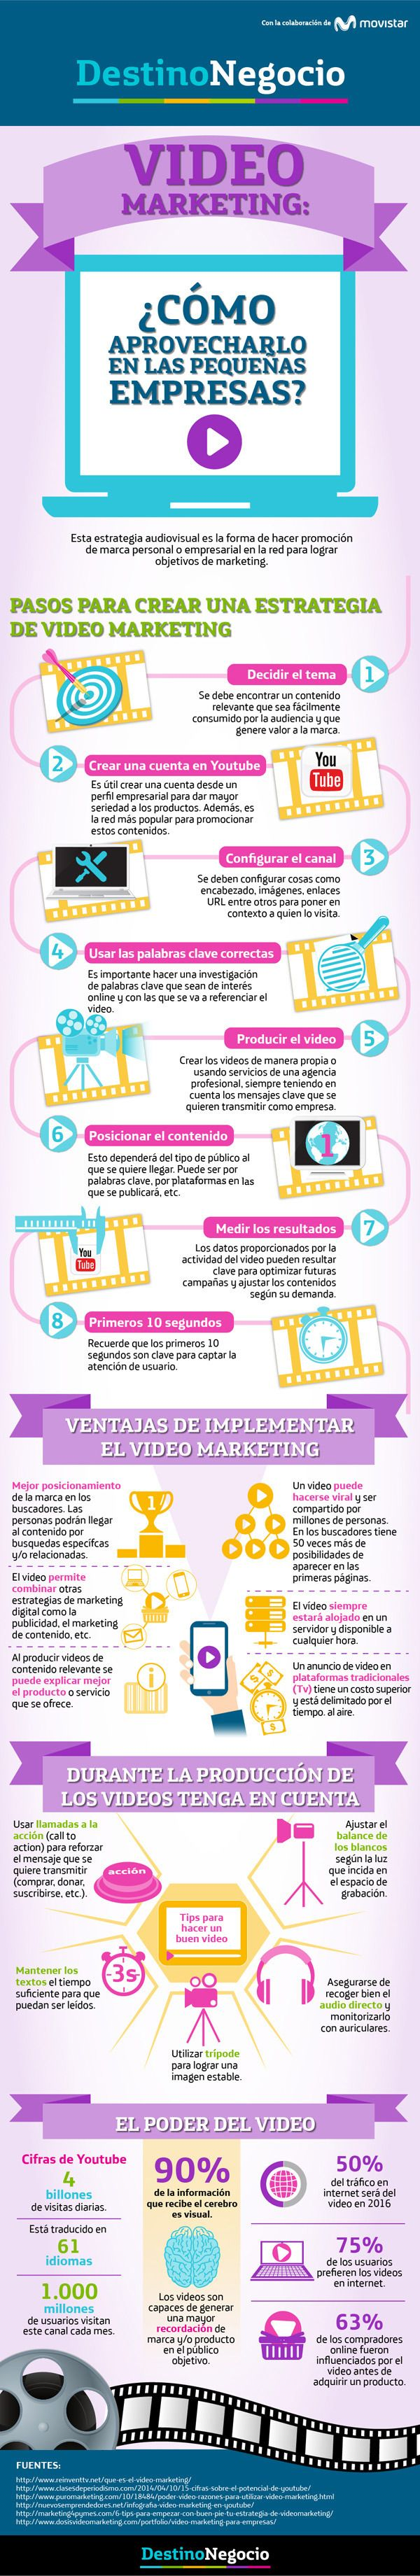 Vídeo marketing para pymes